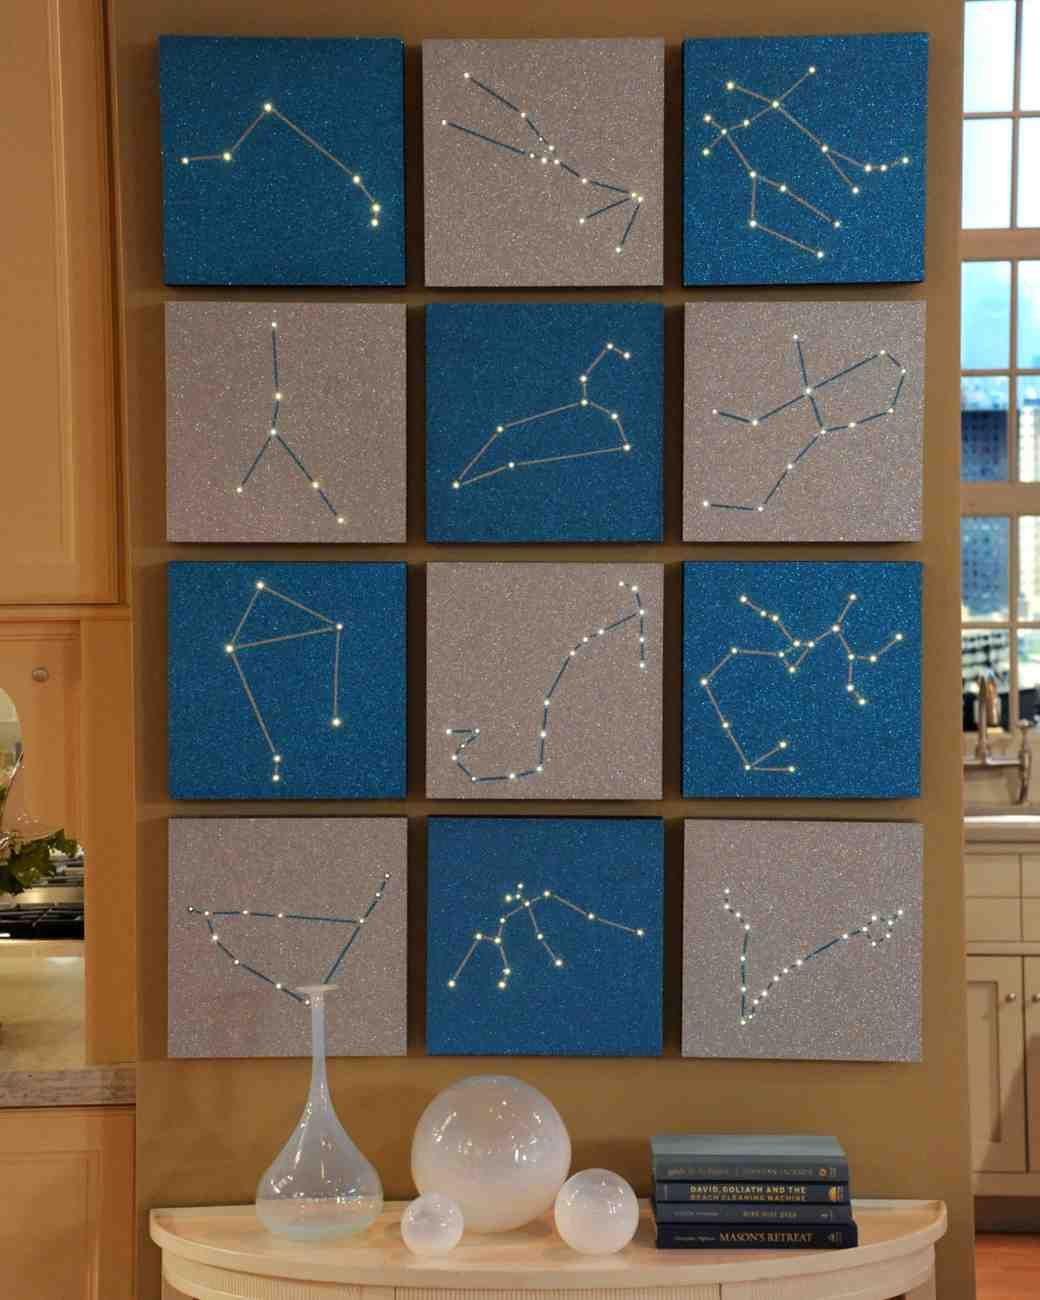 Zodiac Constellation Wall Art Love The Idea But I Would